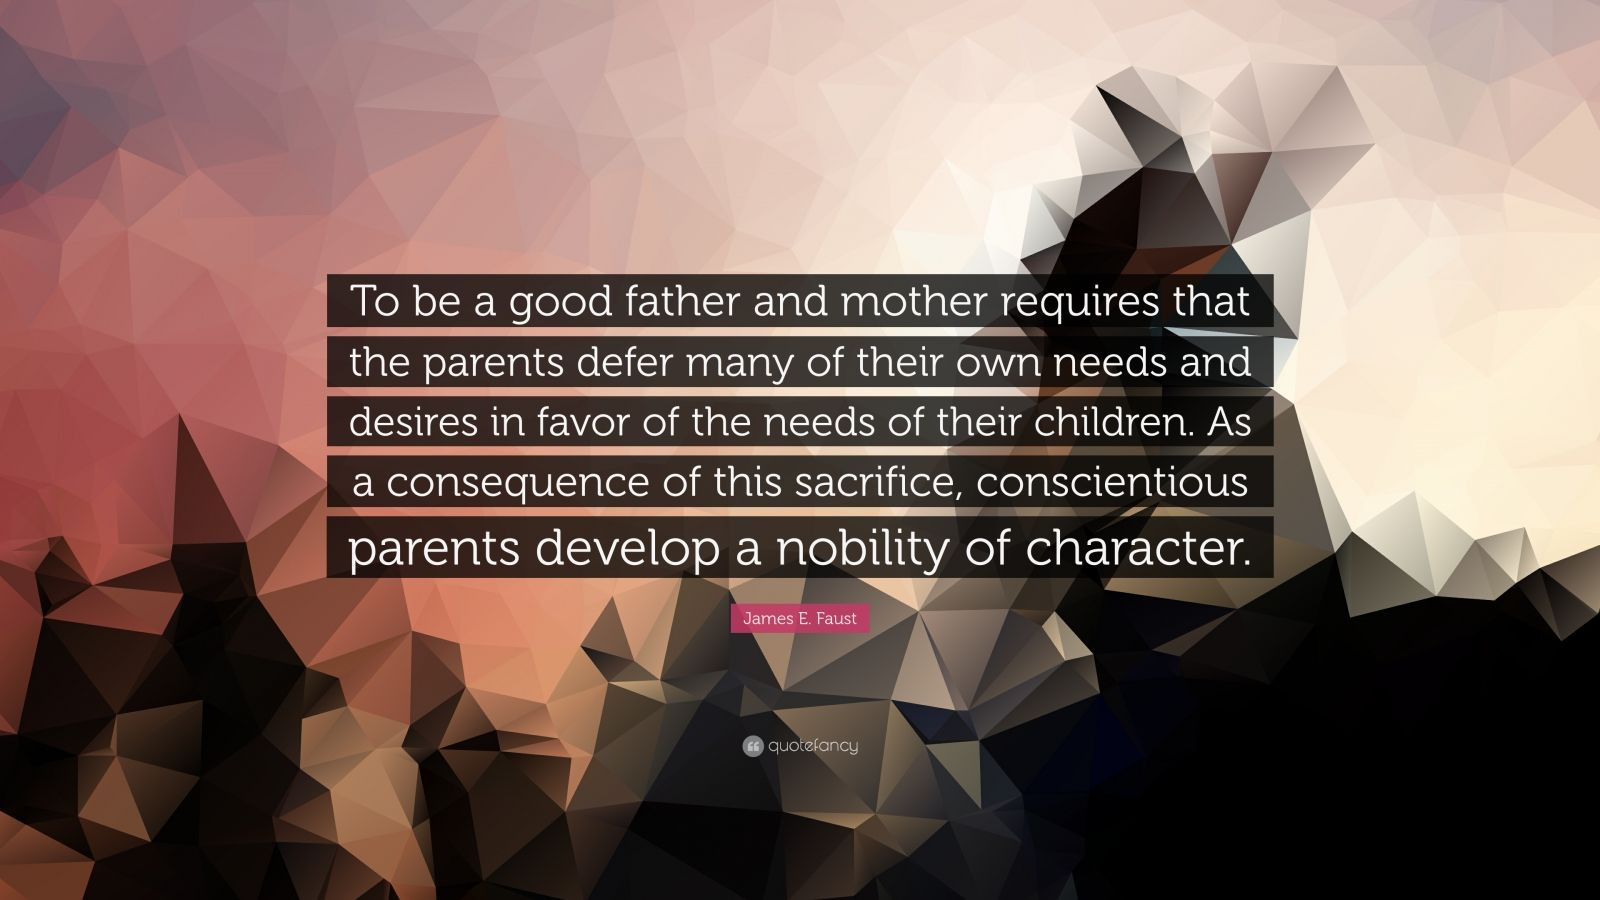 """James E. Faust Quote: """"To be a good father and mother requires that the parents defer many of their own needs and desires in favor of the needs of their children. As a consequence of this sacrifice, conscientious parents develop a nobility of character."""""""